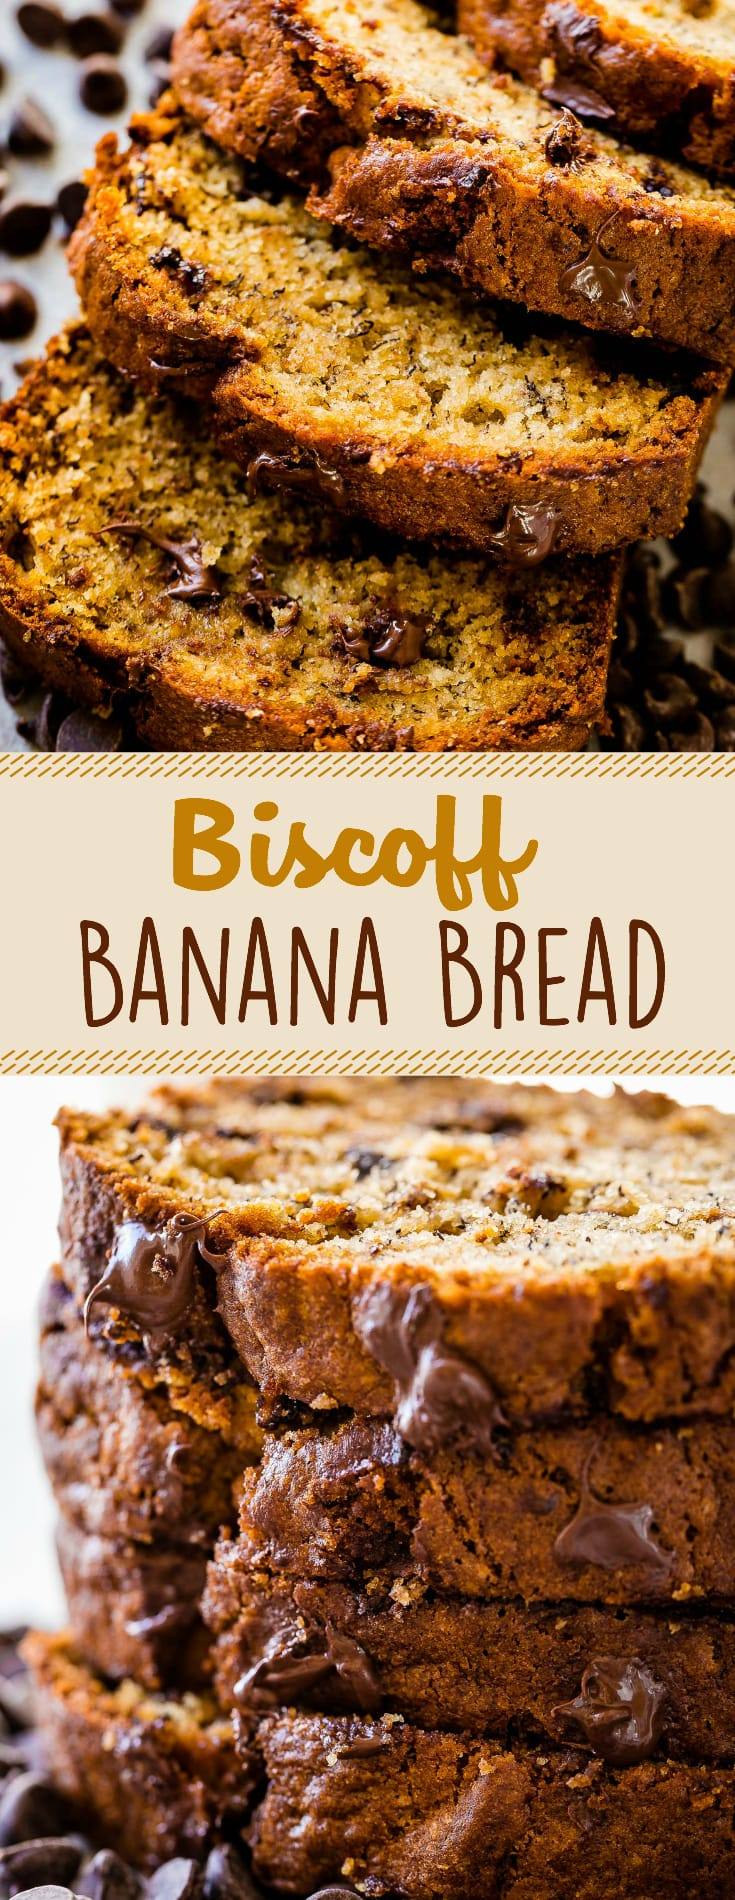 This Biscoff Banana Bread recipe has become our hands down favorite new way to make banana bread. The flavor from the Biscoff is subtle and so good!